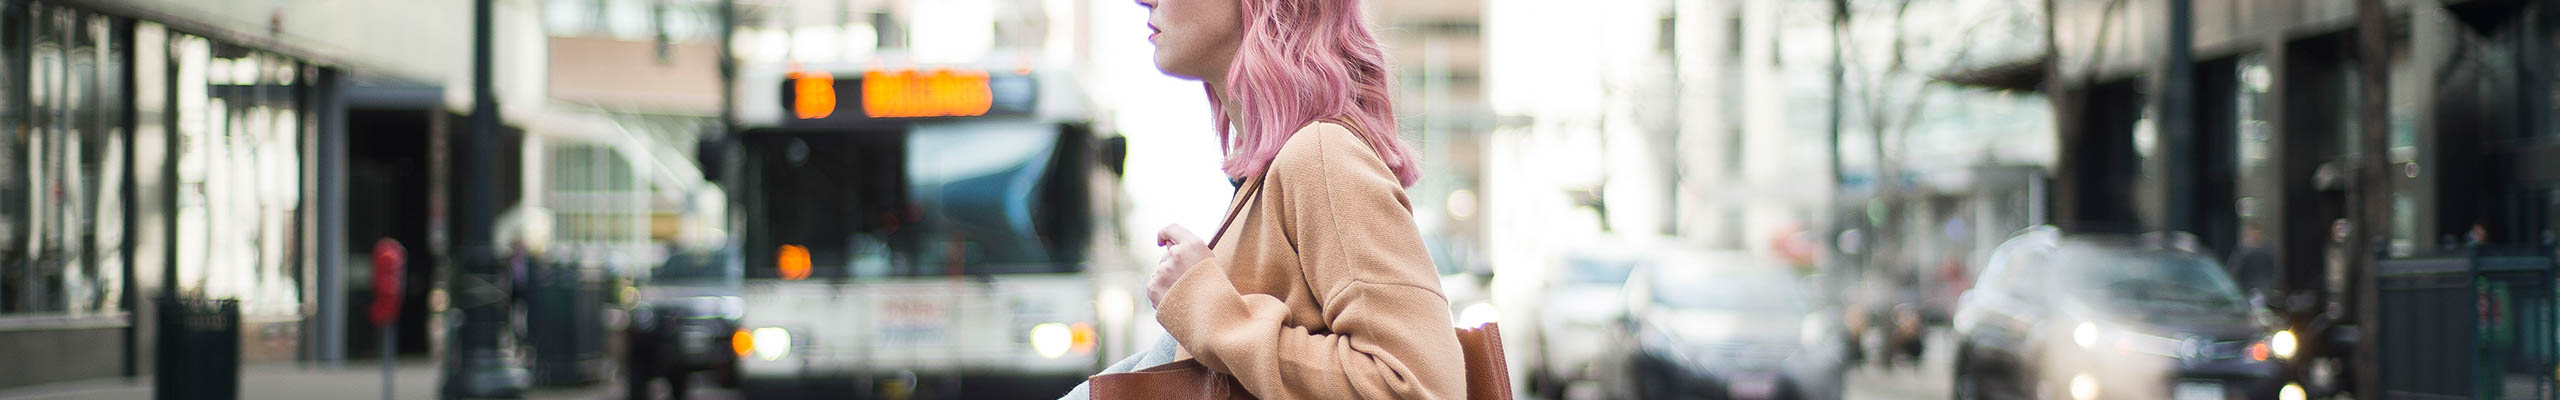 person with pink hair walking in a cityscape